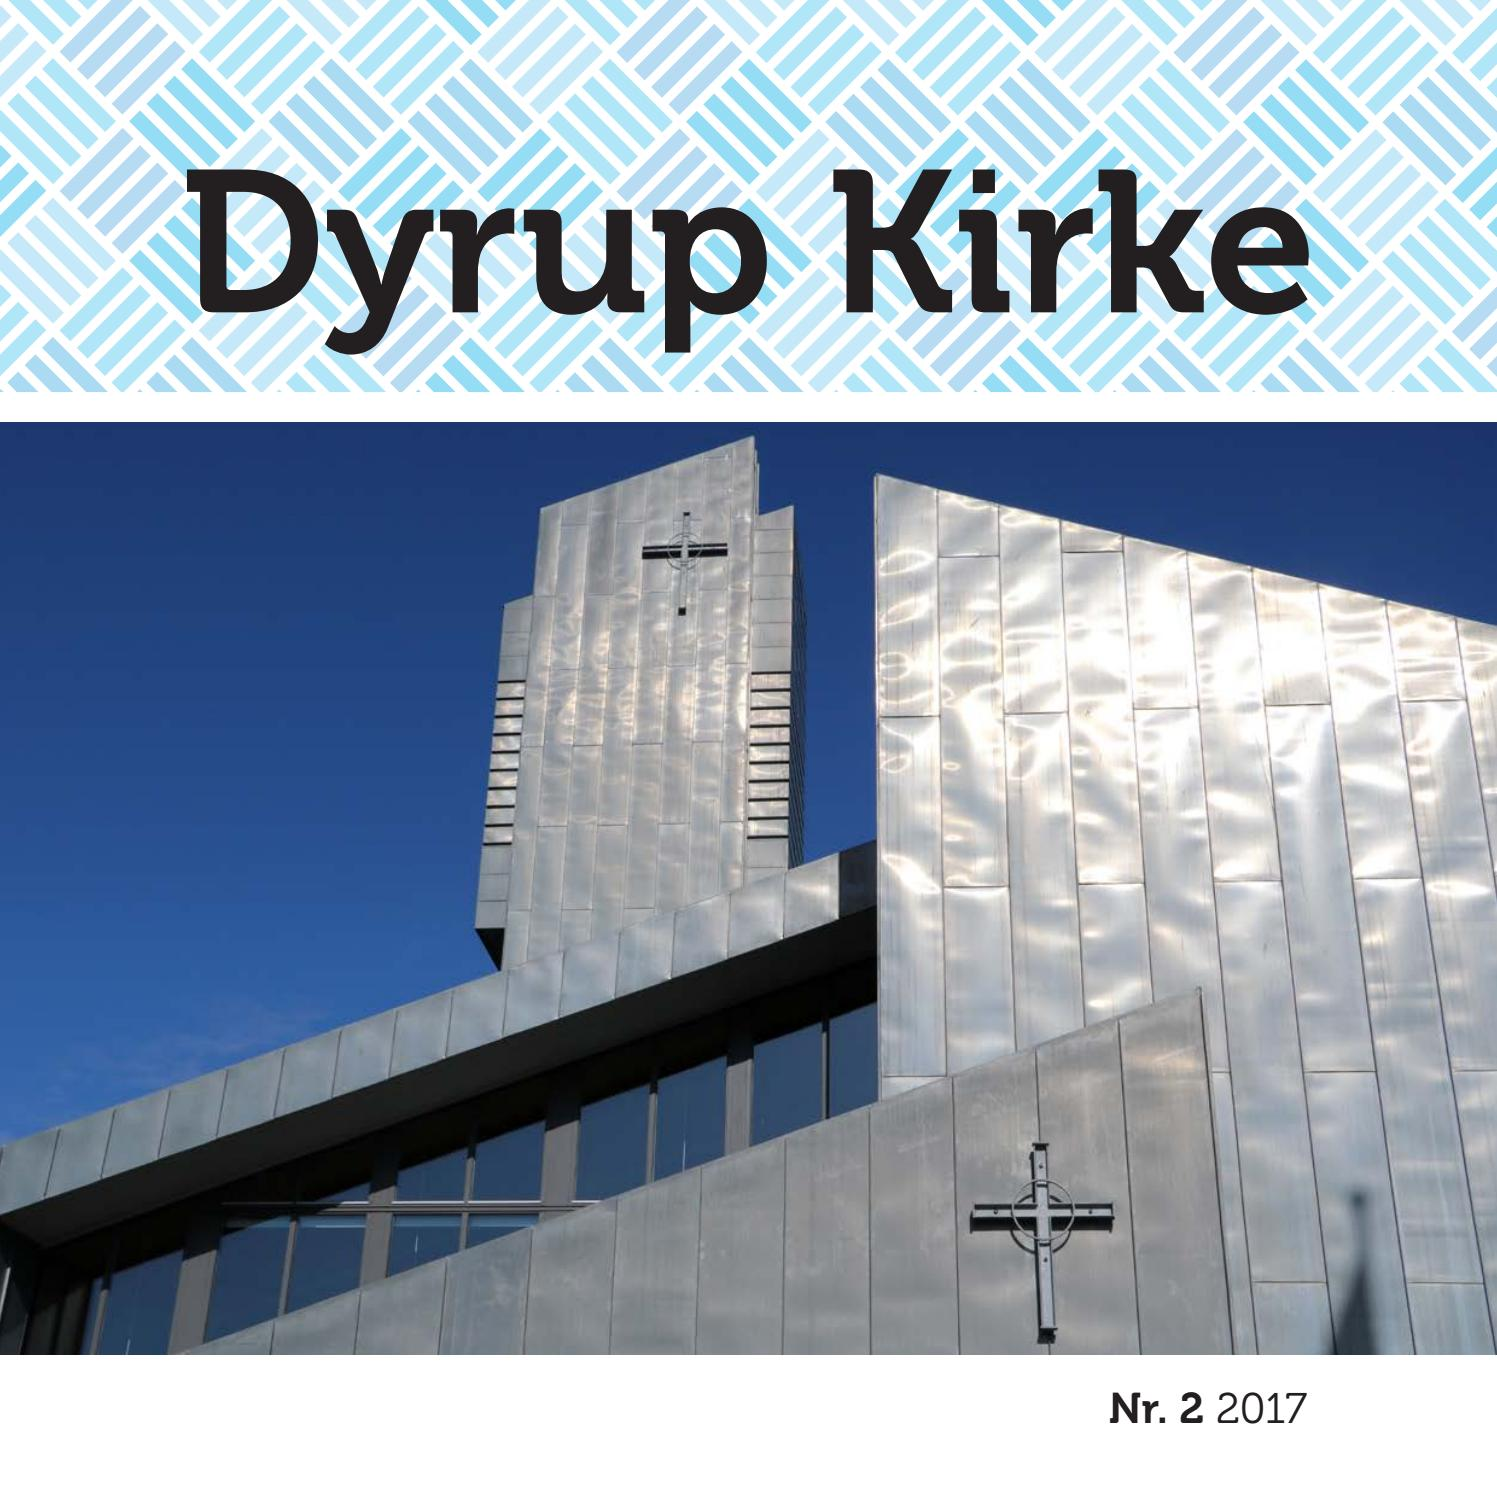 Dyrup Kirkeblad nr 2 2017 by Mark & Storm Grafisk - Issuu